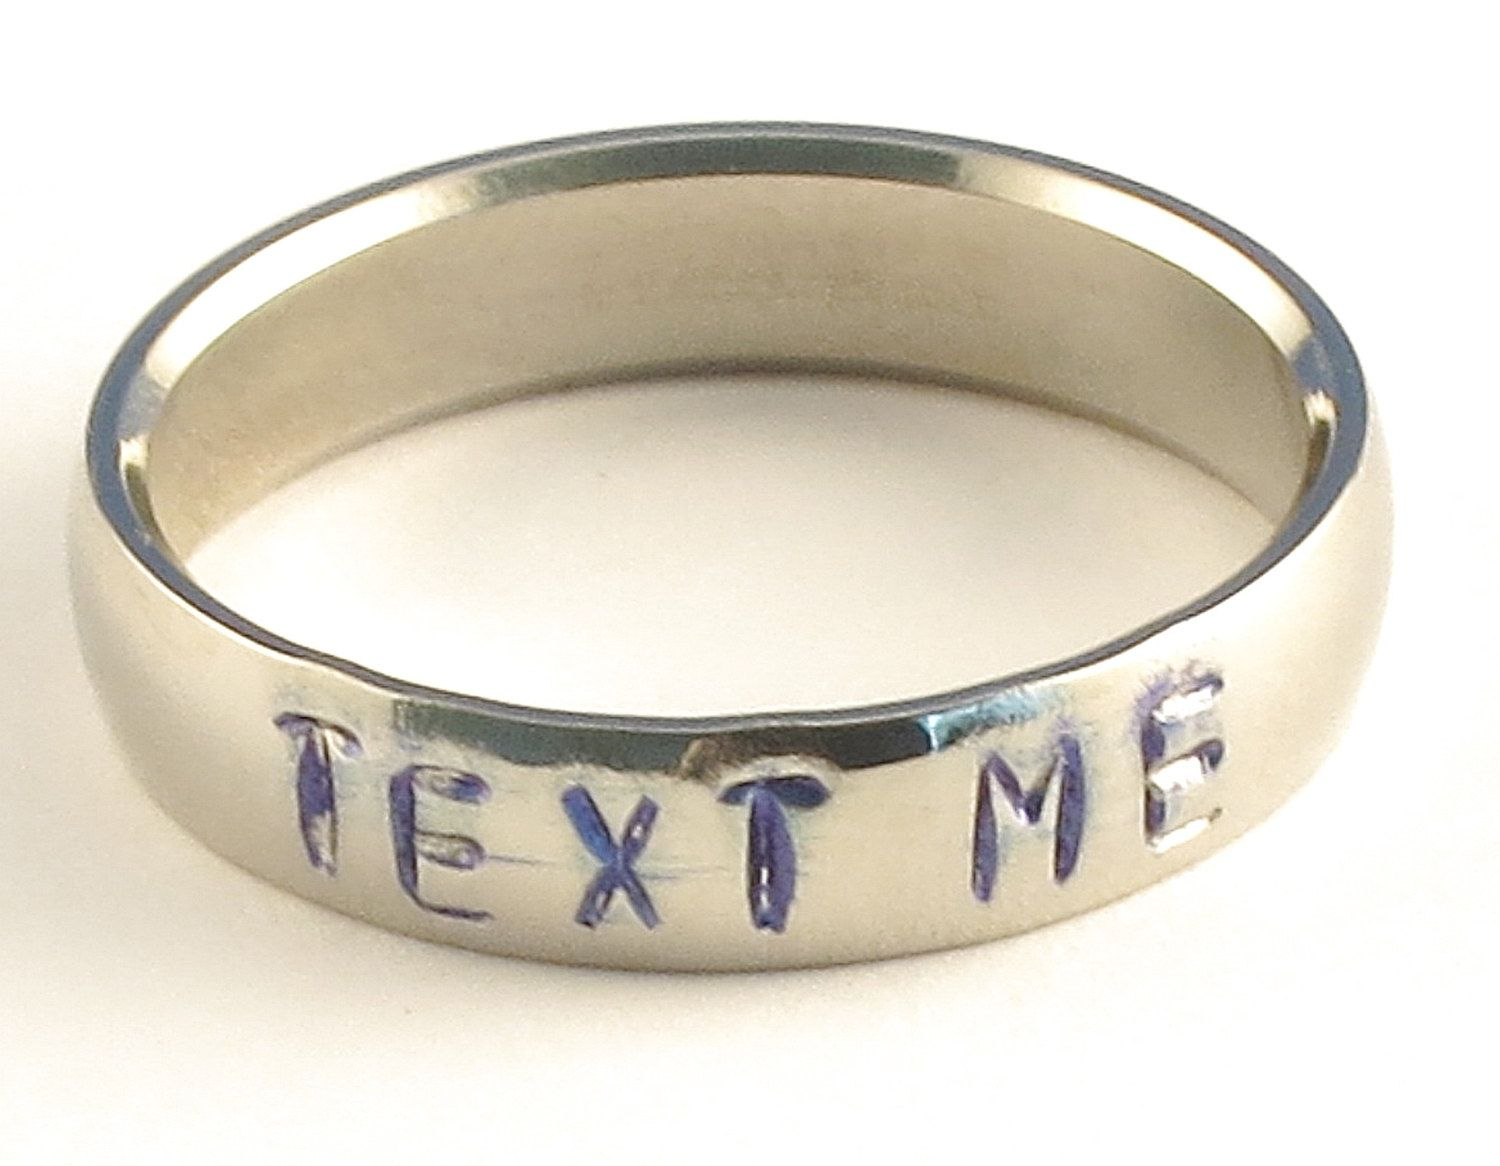 TEXT ME - Personalized Stainless Steel Low Dome Hand Stamped Name Ring 5mm Ring Sizes 3-14 by Lulaport on Etsy